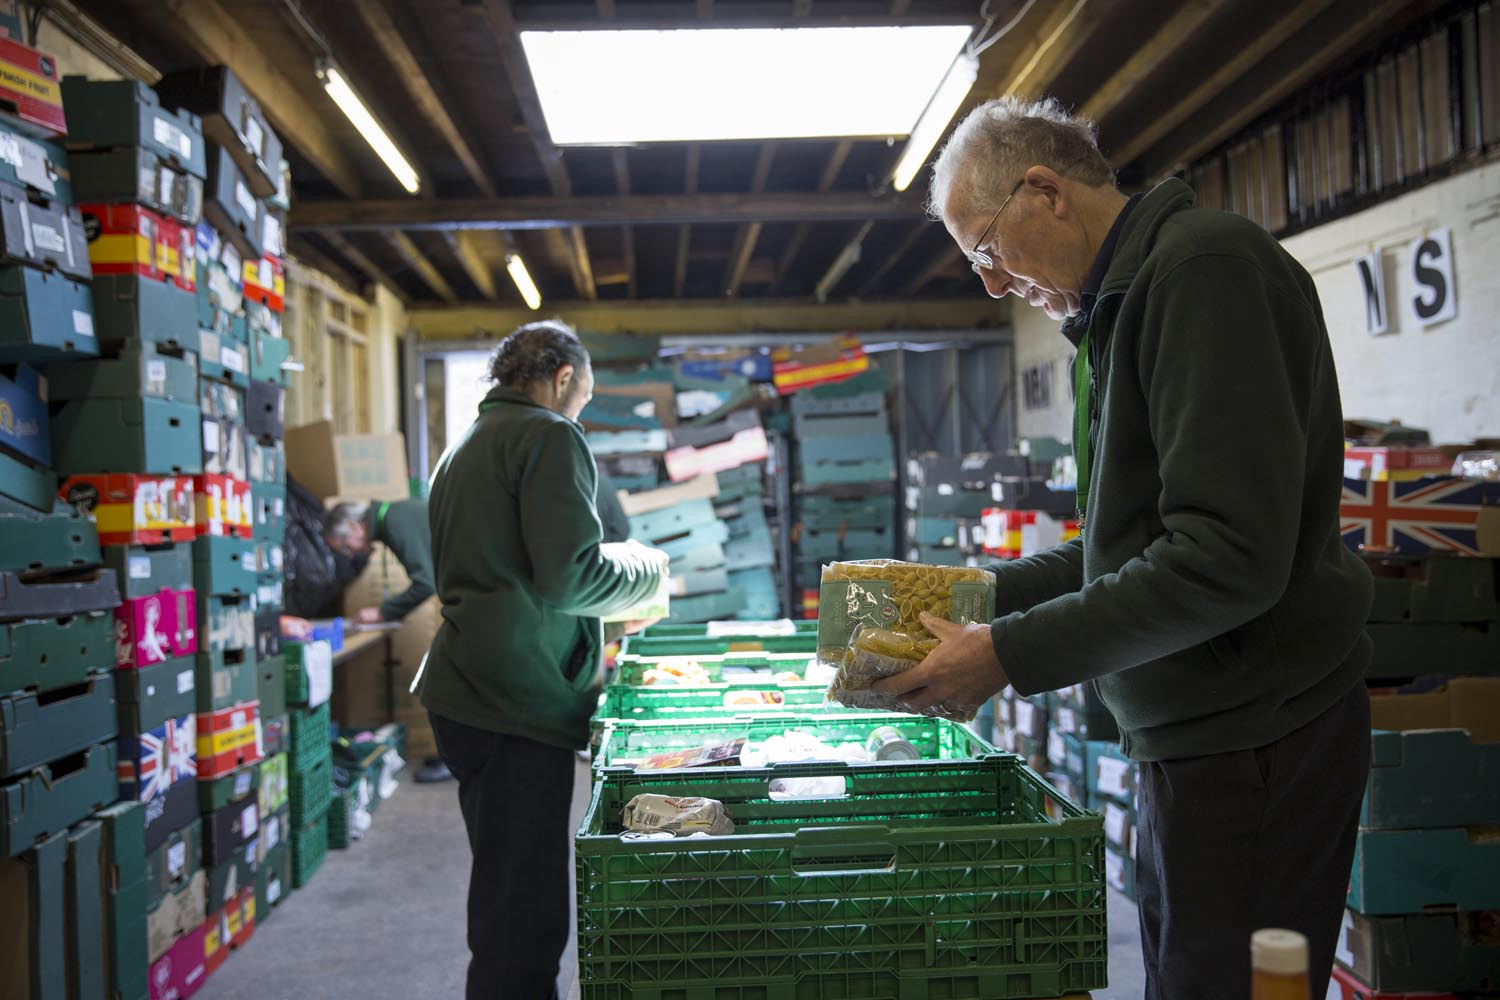 Sorting food in the warehouse - image by the Trussell Trust